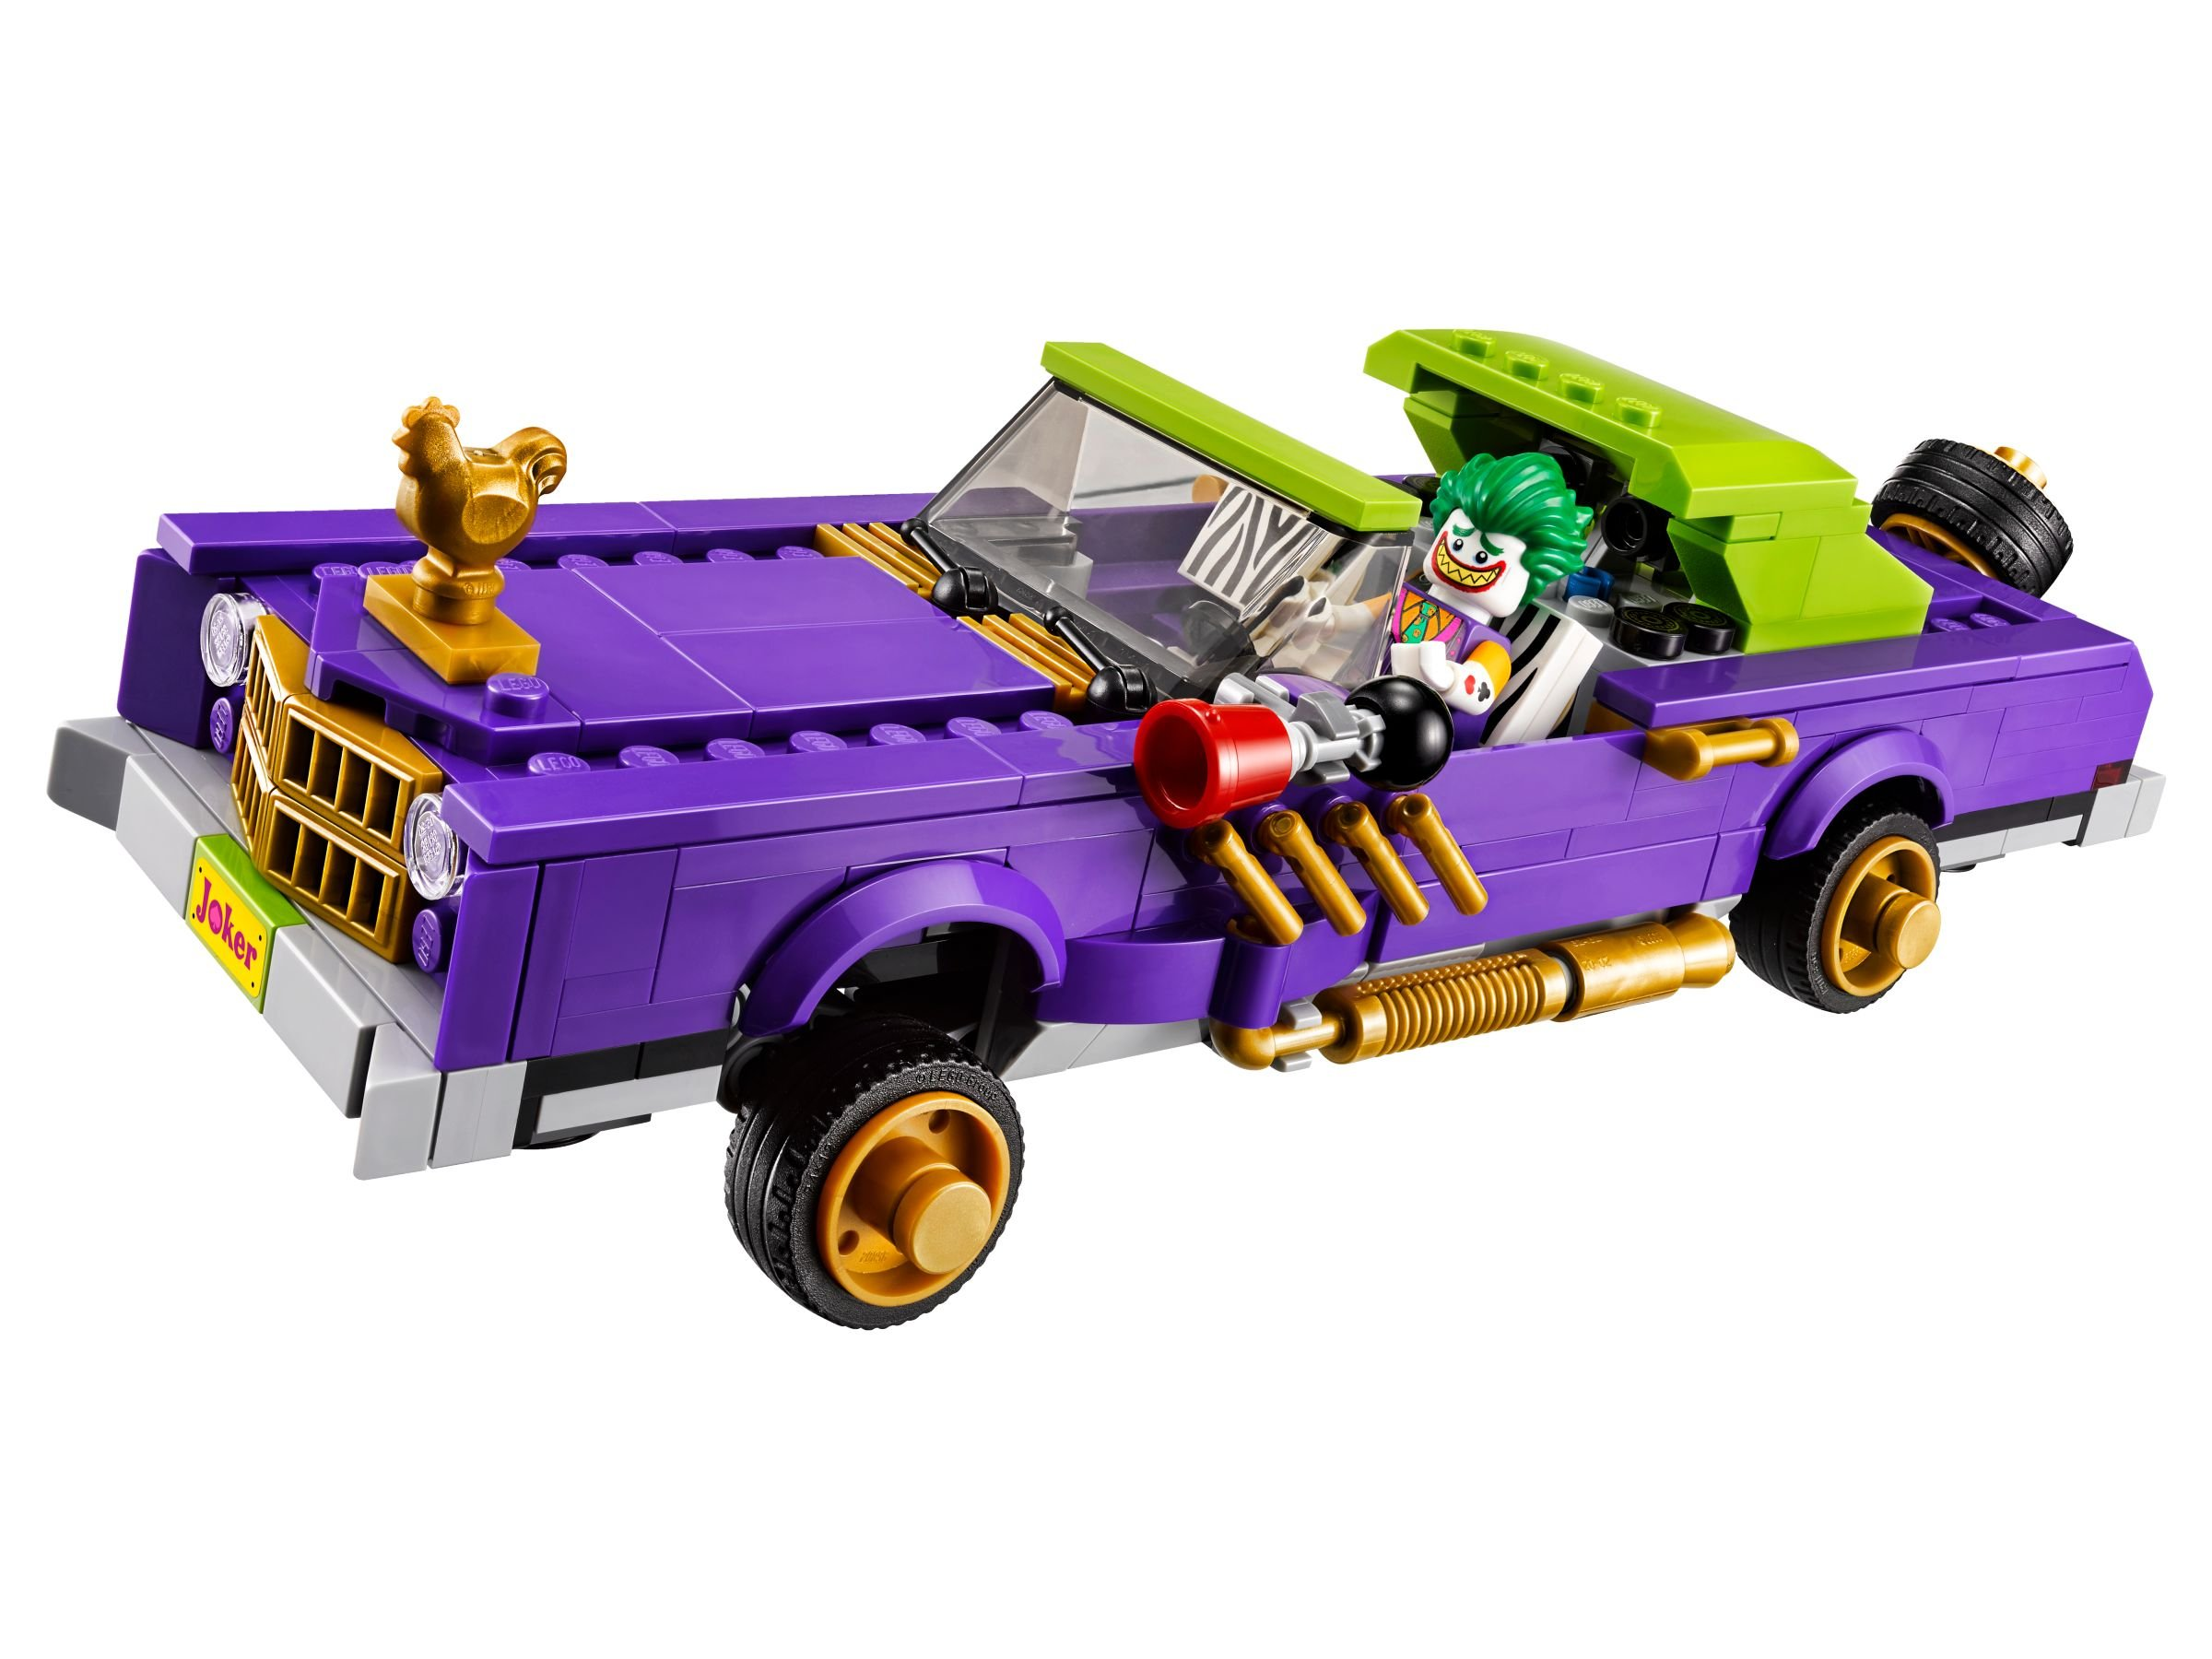 LEGO The LEGO Batman Movie 70906 Jokers berüchtigter Lowrider LEGO_70906_alt2.jpg